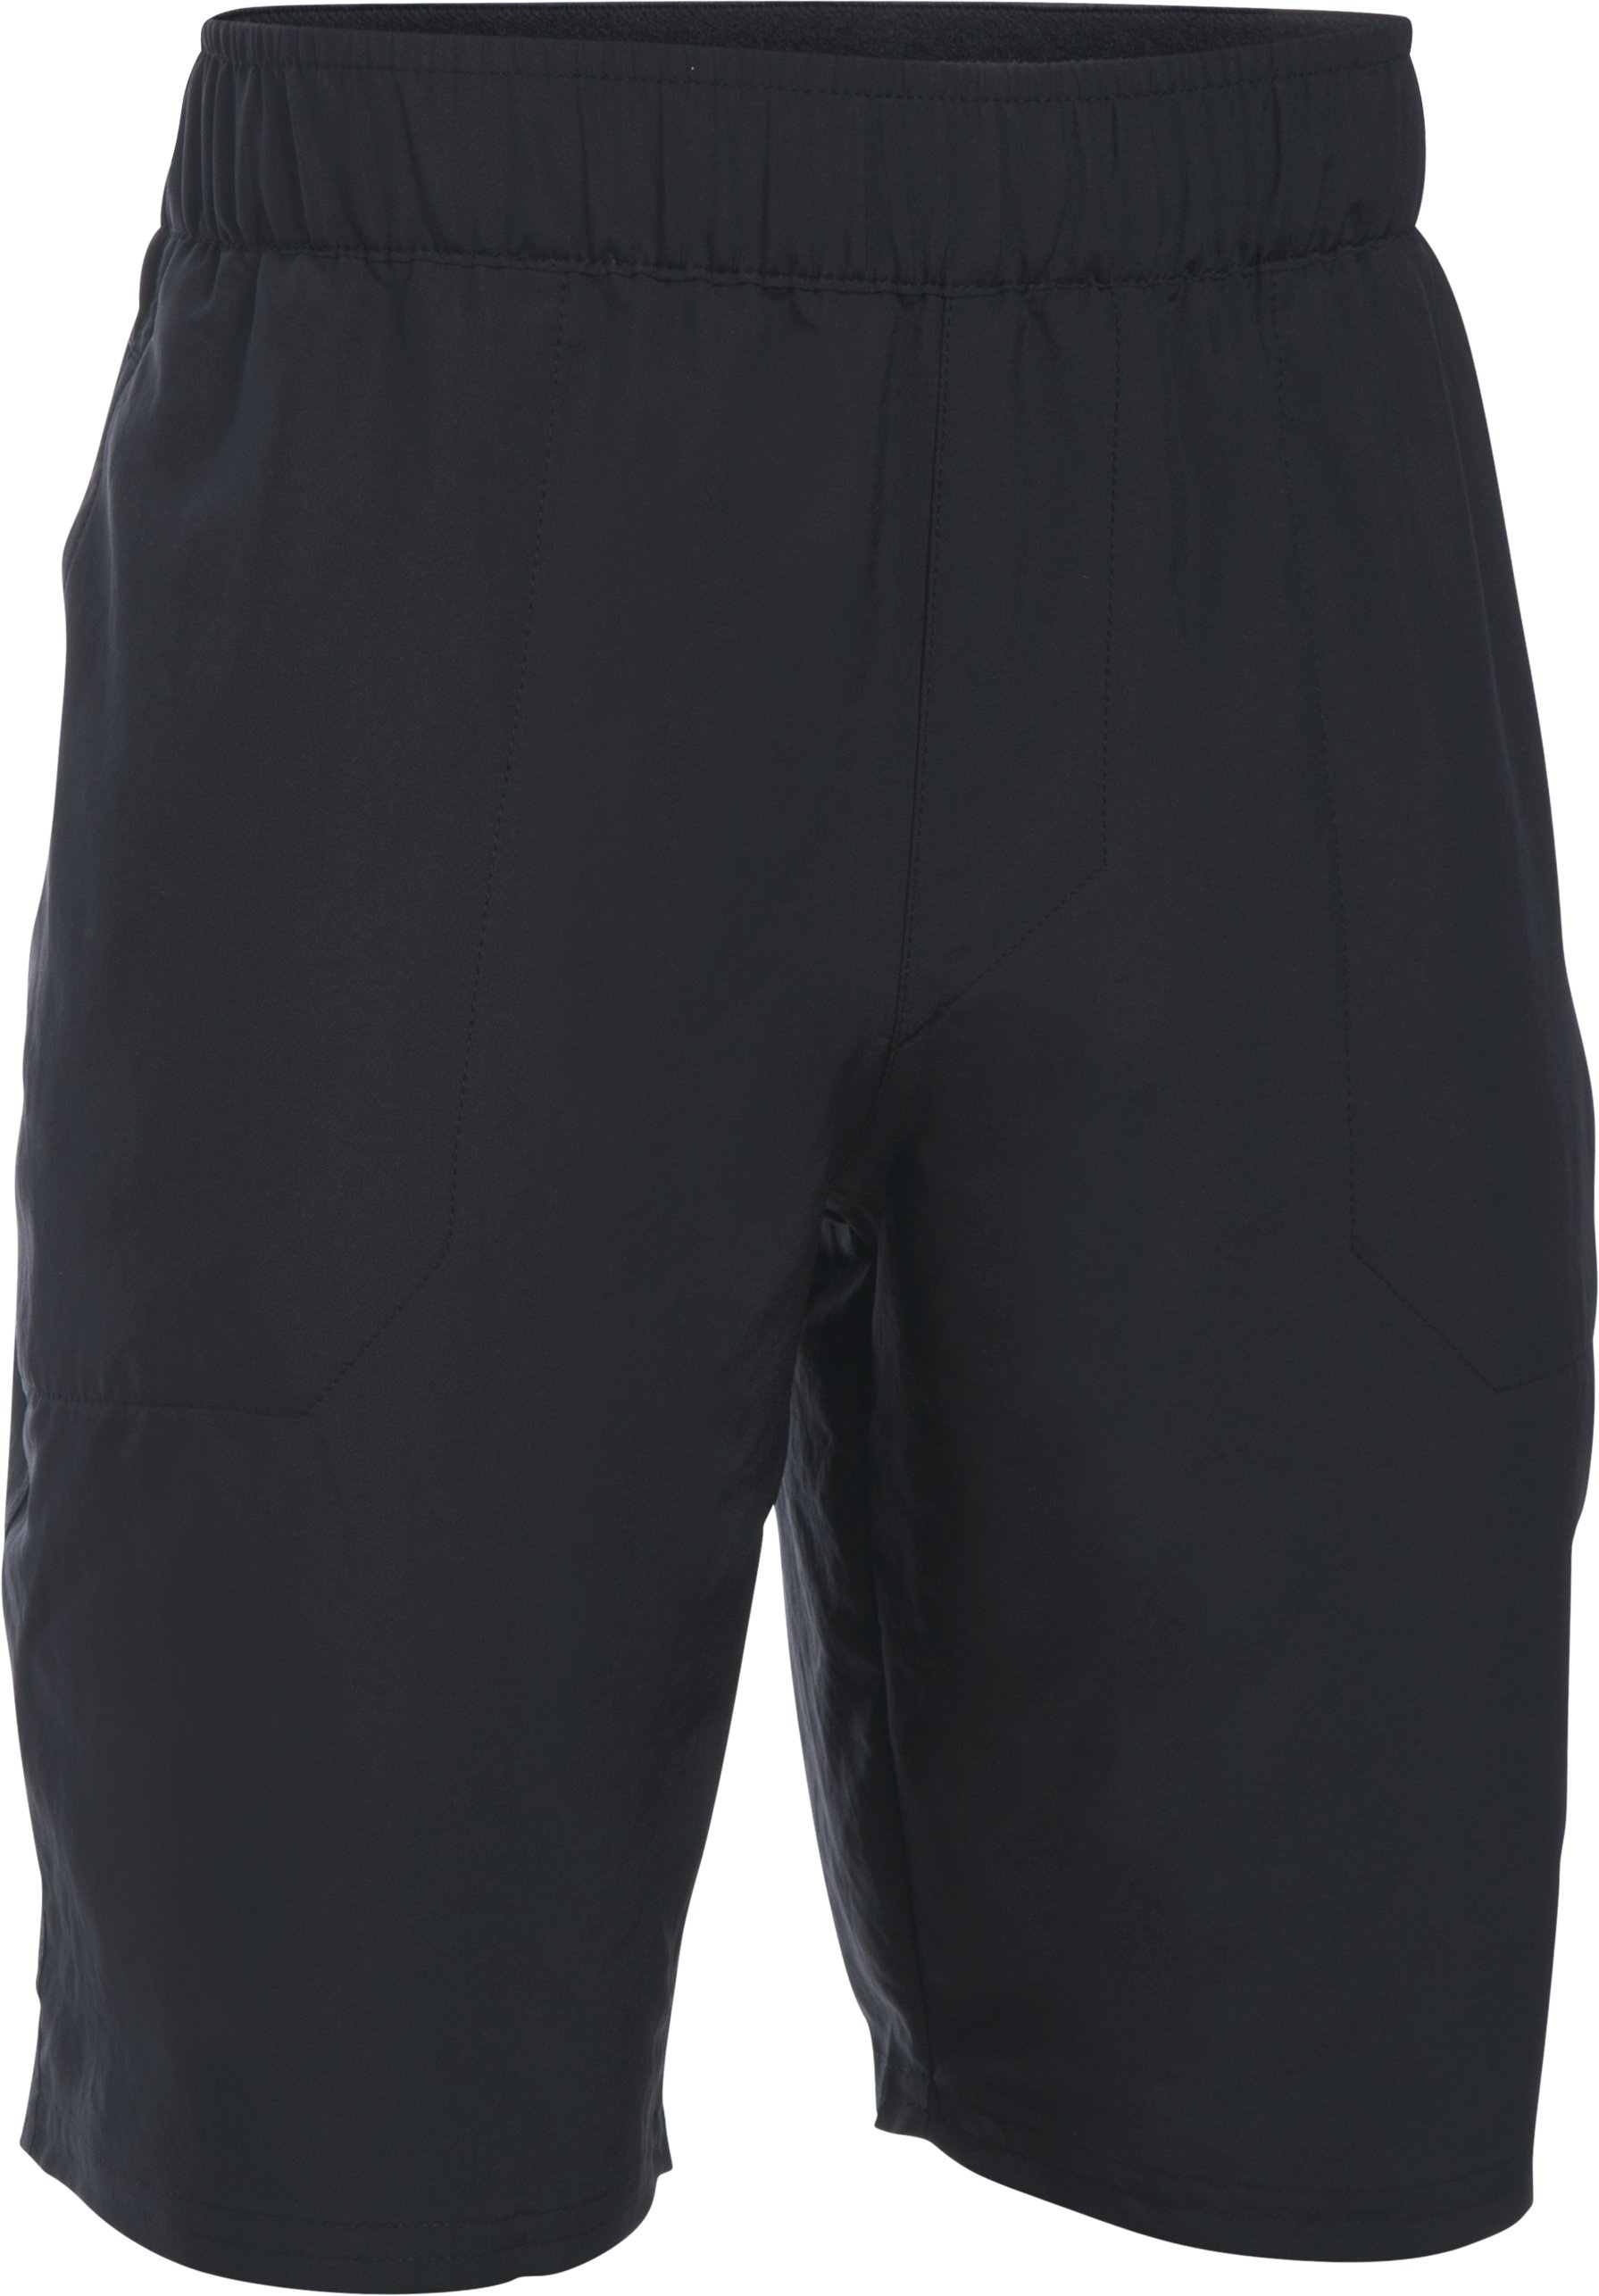 Boys' UA Coastal Amphibious Shorts, Black